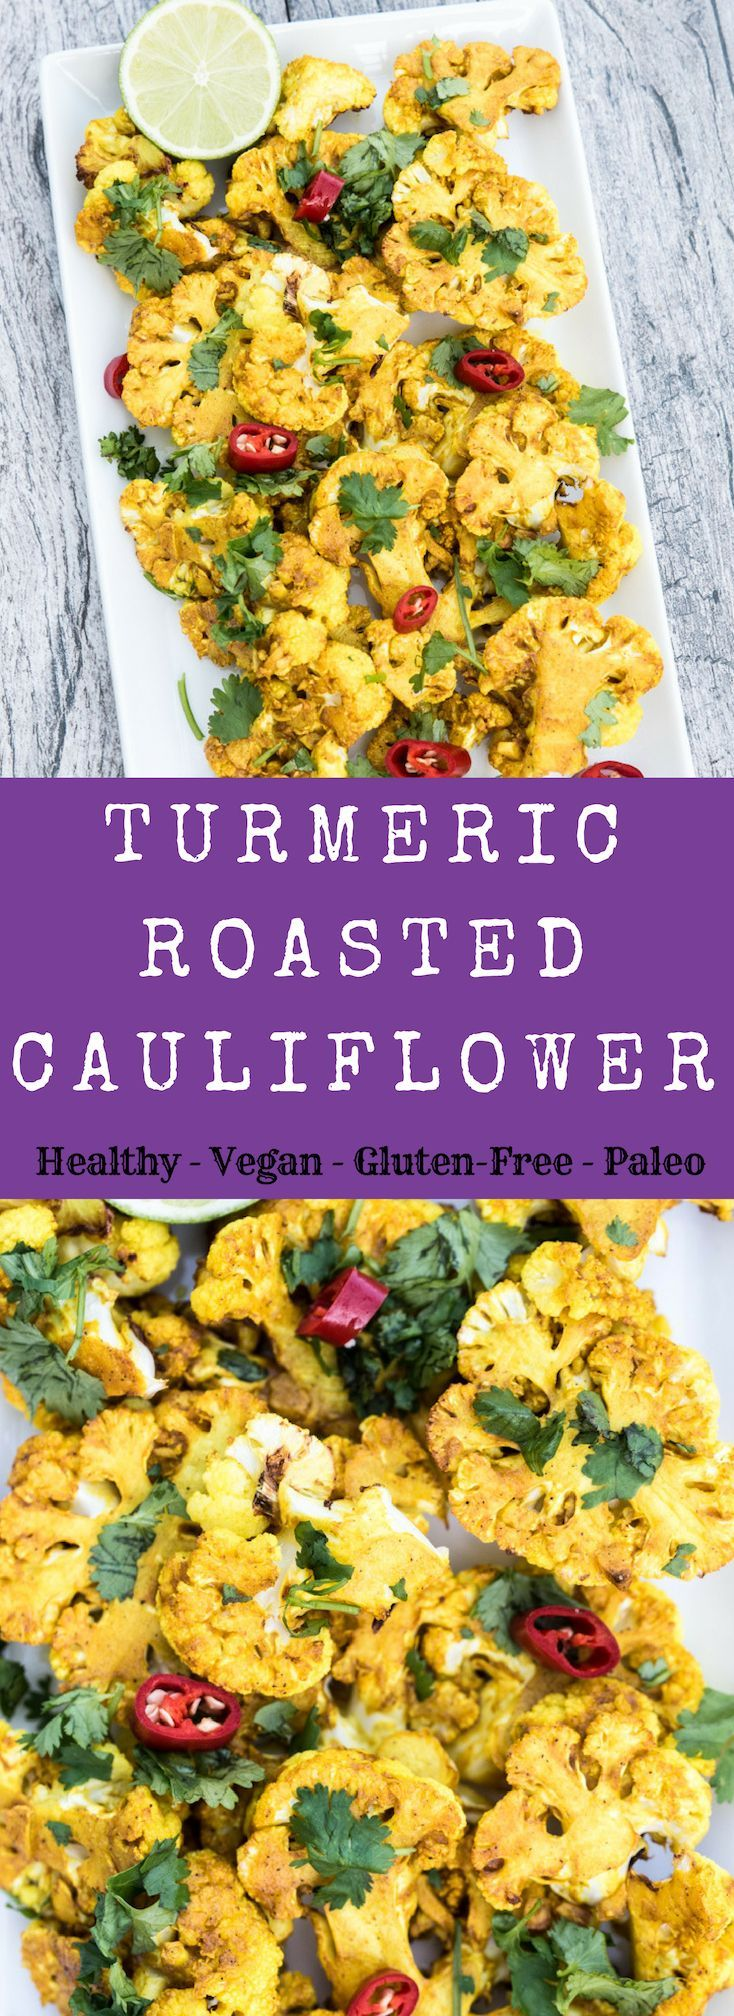 Easy Healthy Oven Baked Turmeric Roasted Cauliflower Steaks And Florets Made Cauliflower Steaks Recipes Indian Cauliflower Recipes Baked Cauliflower Recipe